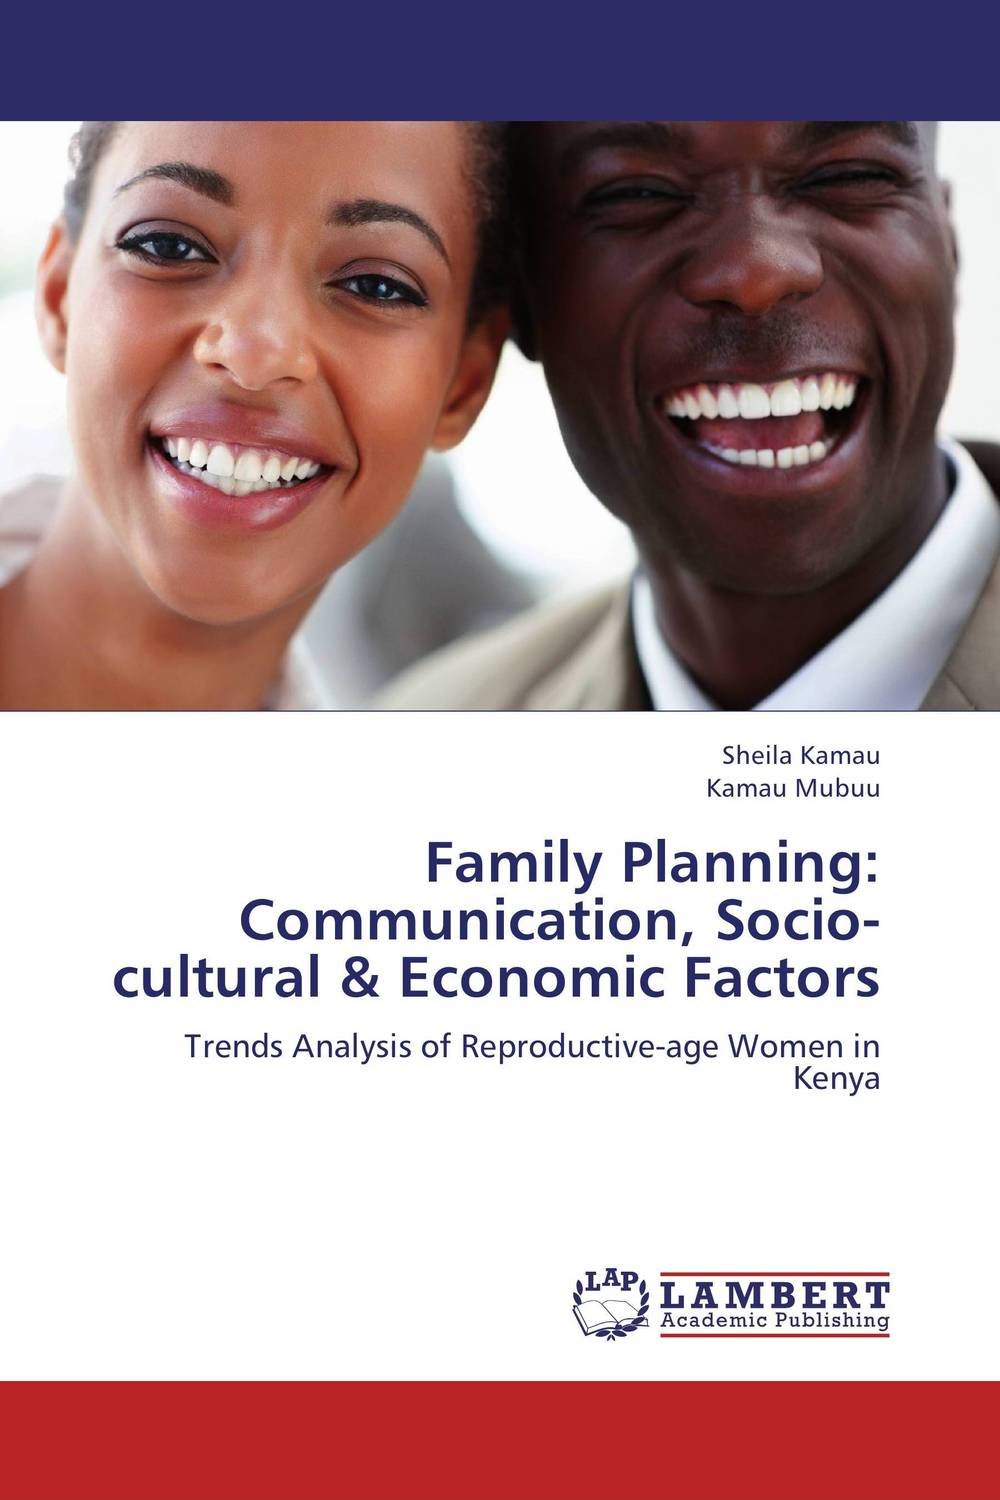 Family Planning: Communication, Socio-cultural & Economic Factors палантин piazza italia piazza italia pi022gwyrq40